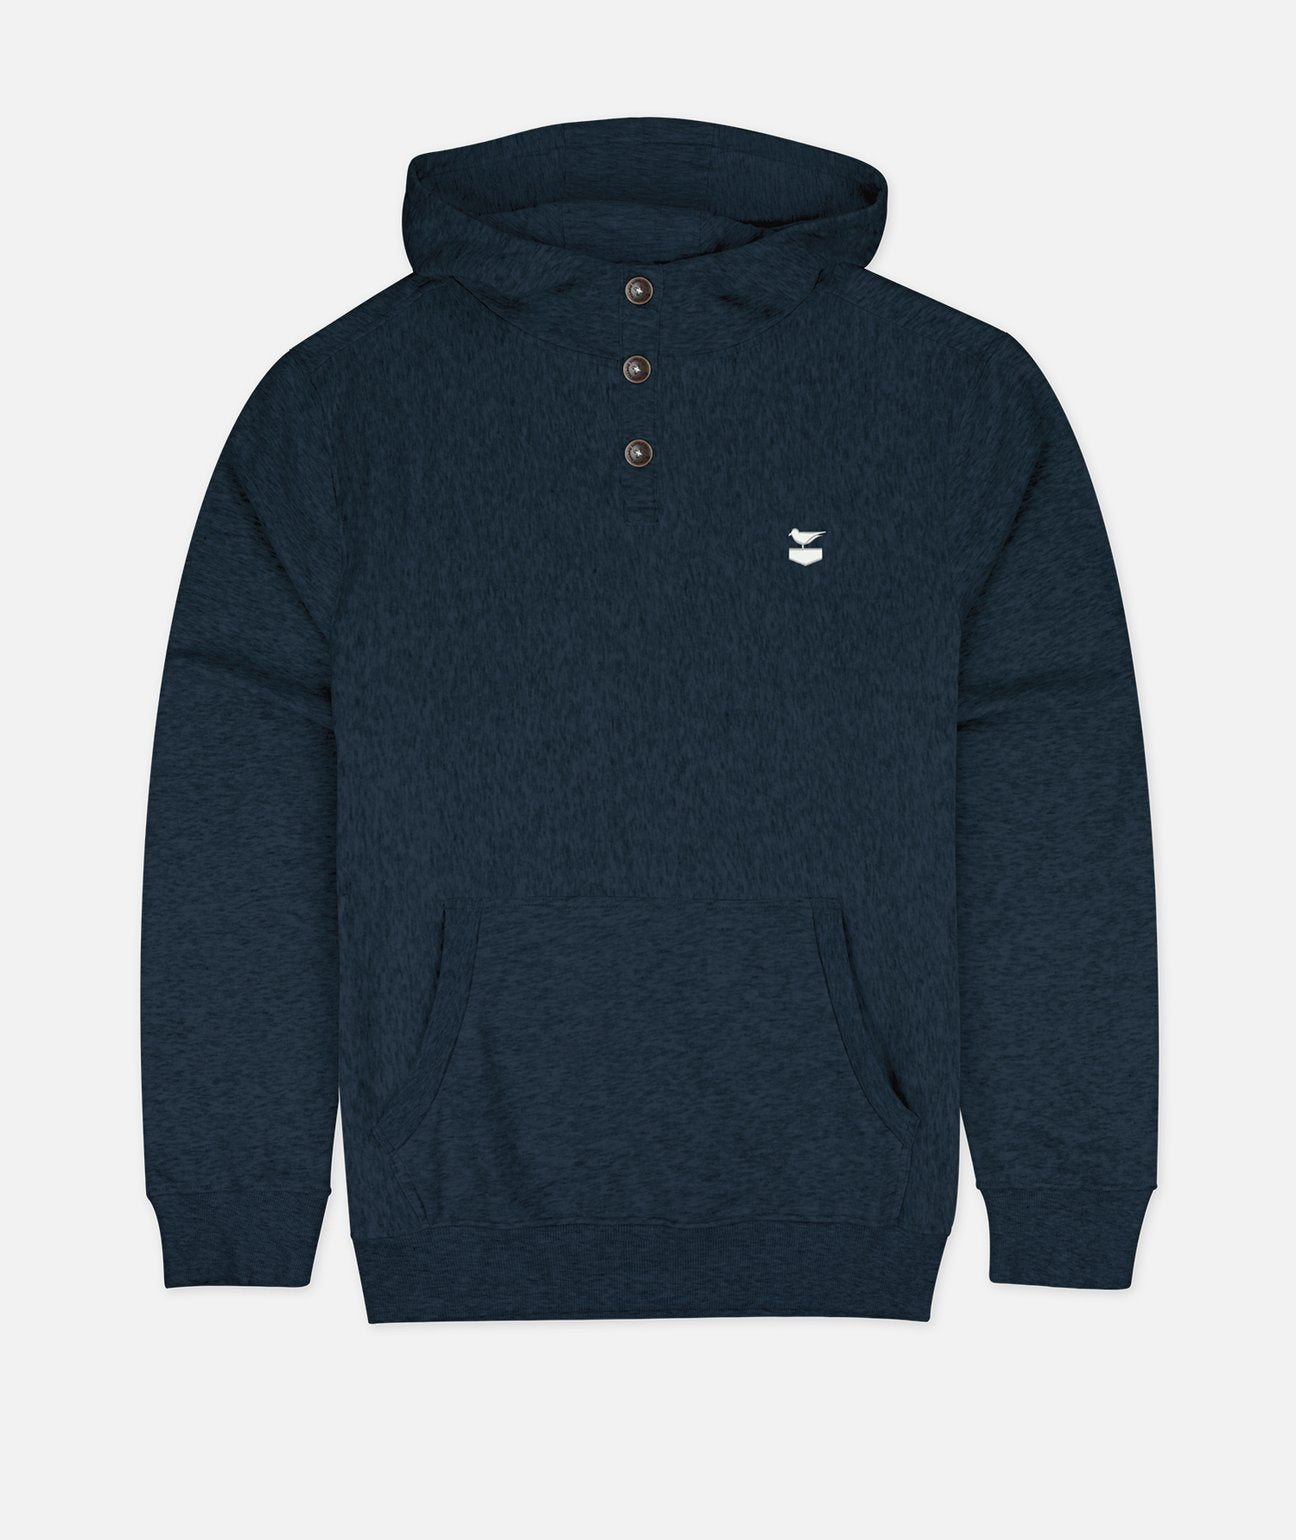 Men's Trawler Hoodie - The Lake and Company